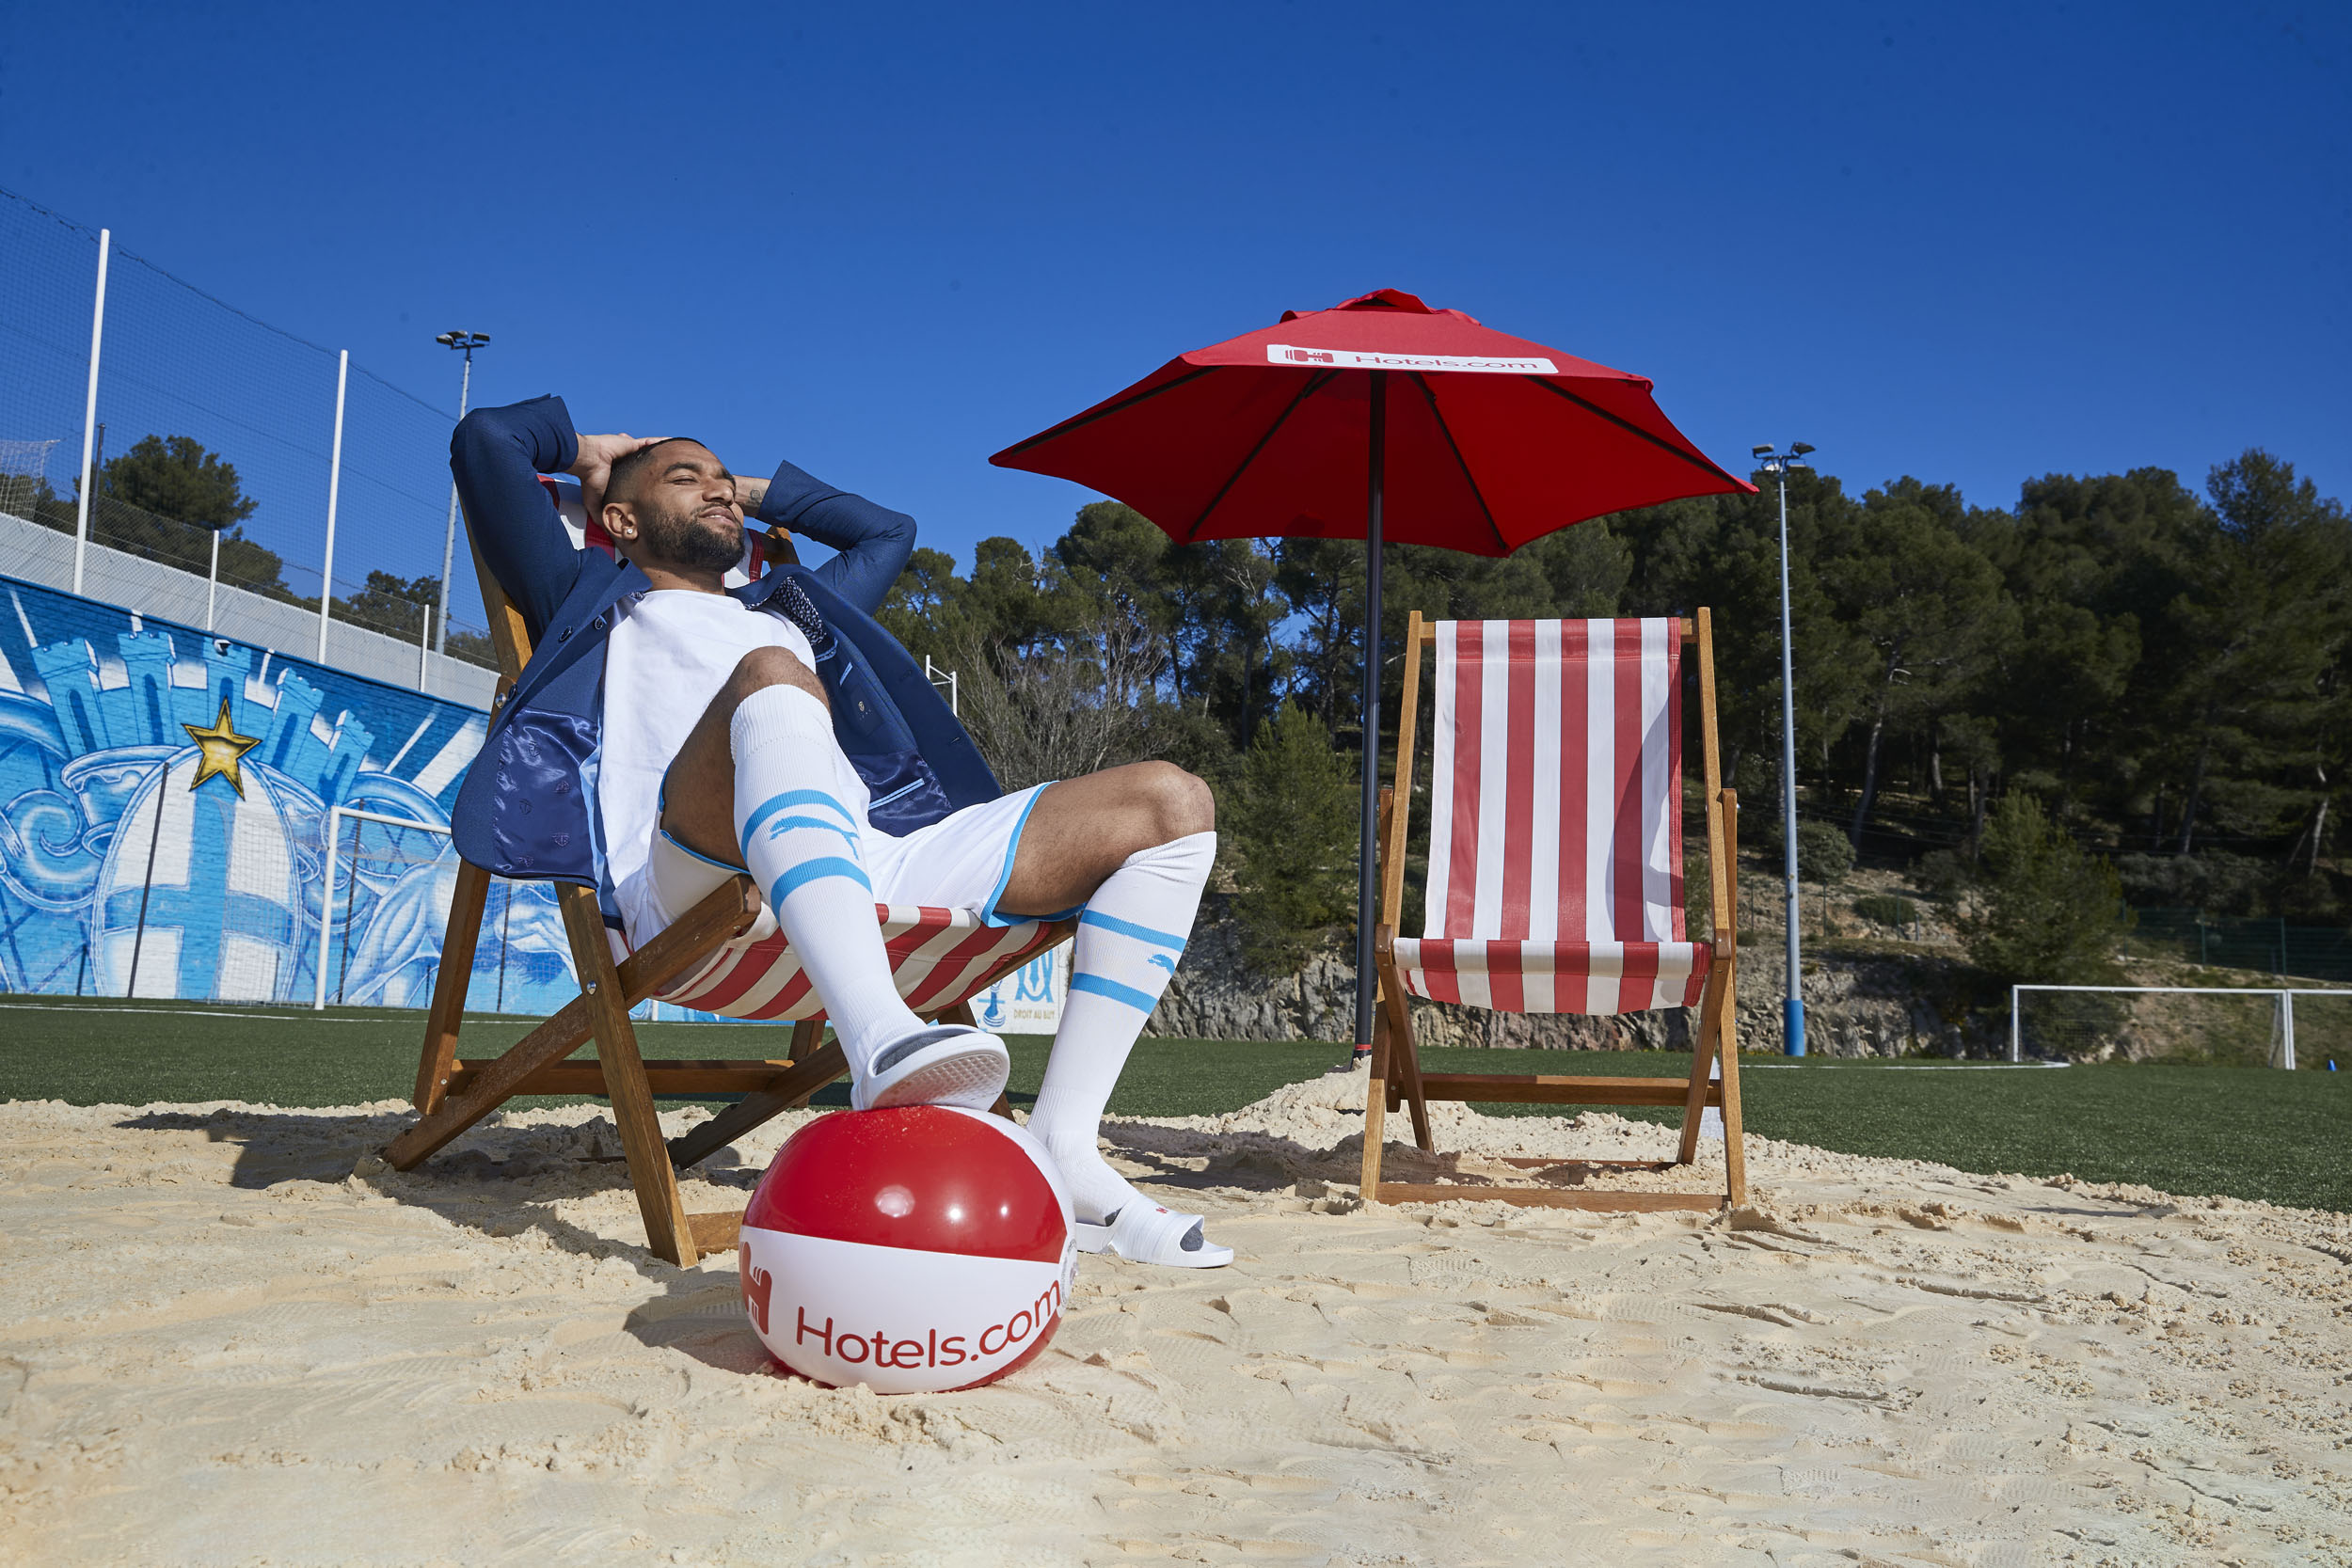 Steve Mandanda Olympique de Marseille Beach Ball Deckchair Hands Behind Heard Relaxed © Mark Robinson Photographer Hotels.com